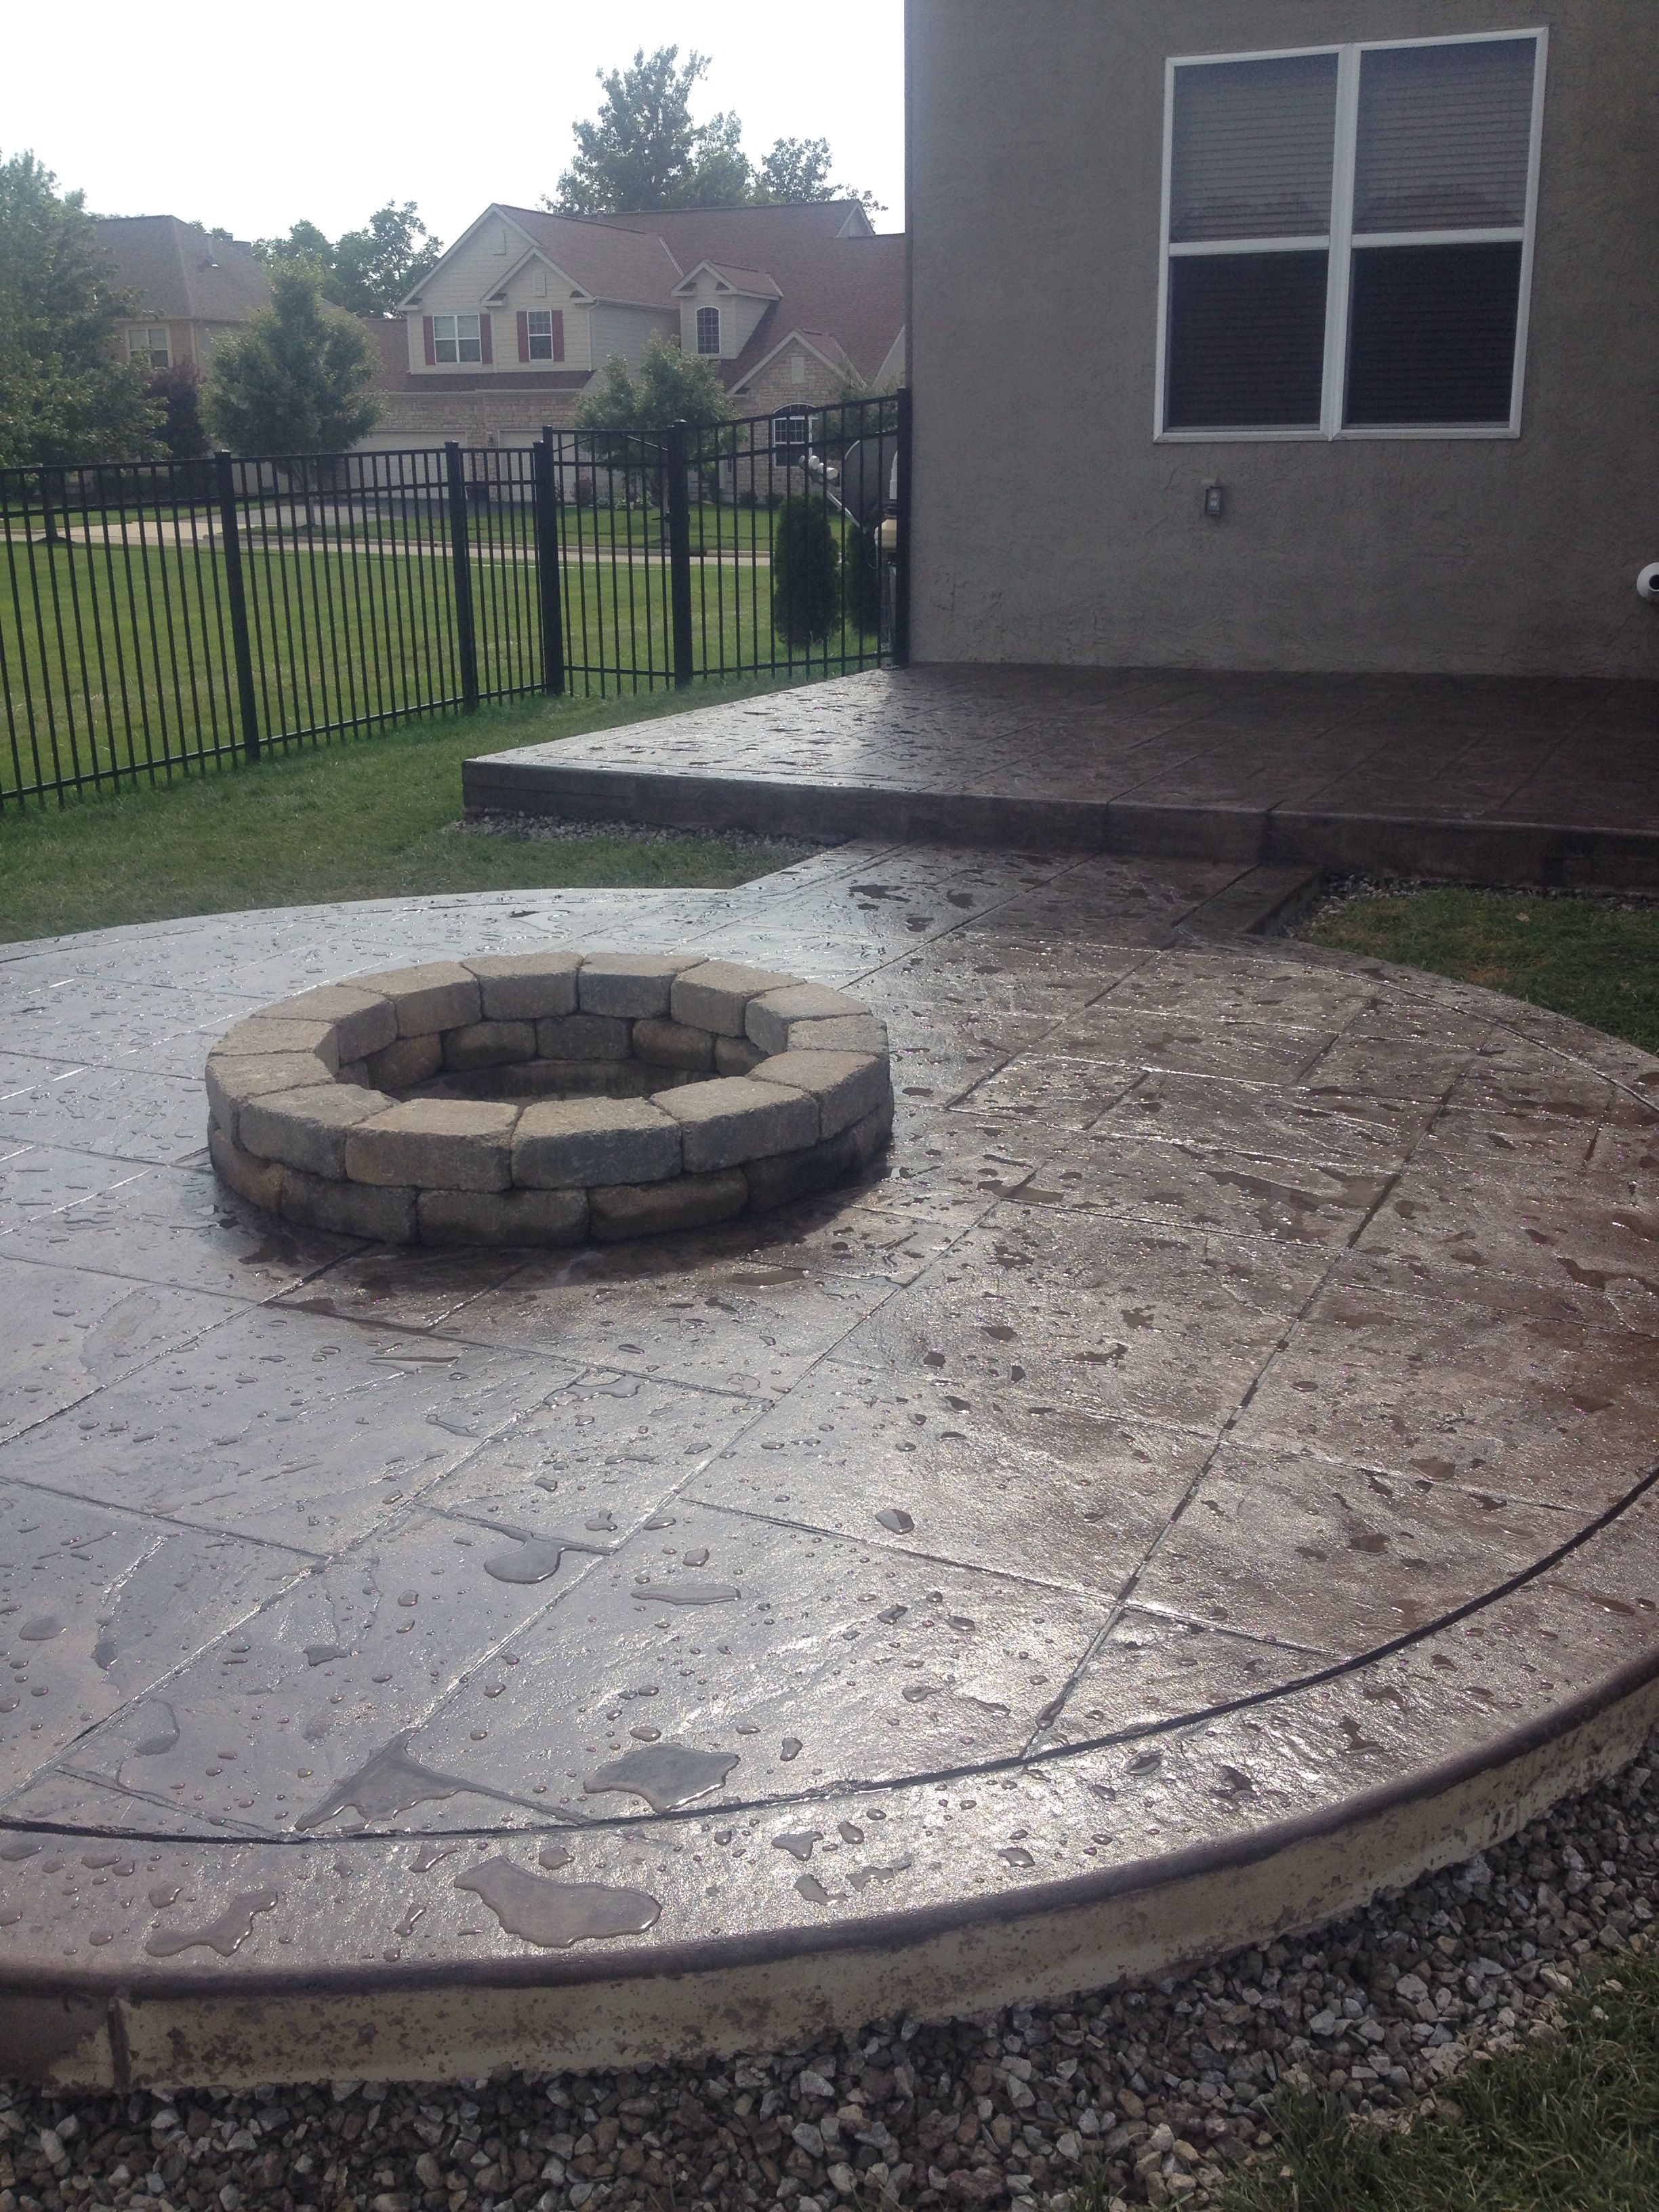 A Beautifully Designed Colored Stamped Concrete Patio Using in dimensions 2448 X 3264